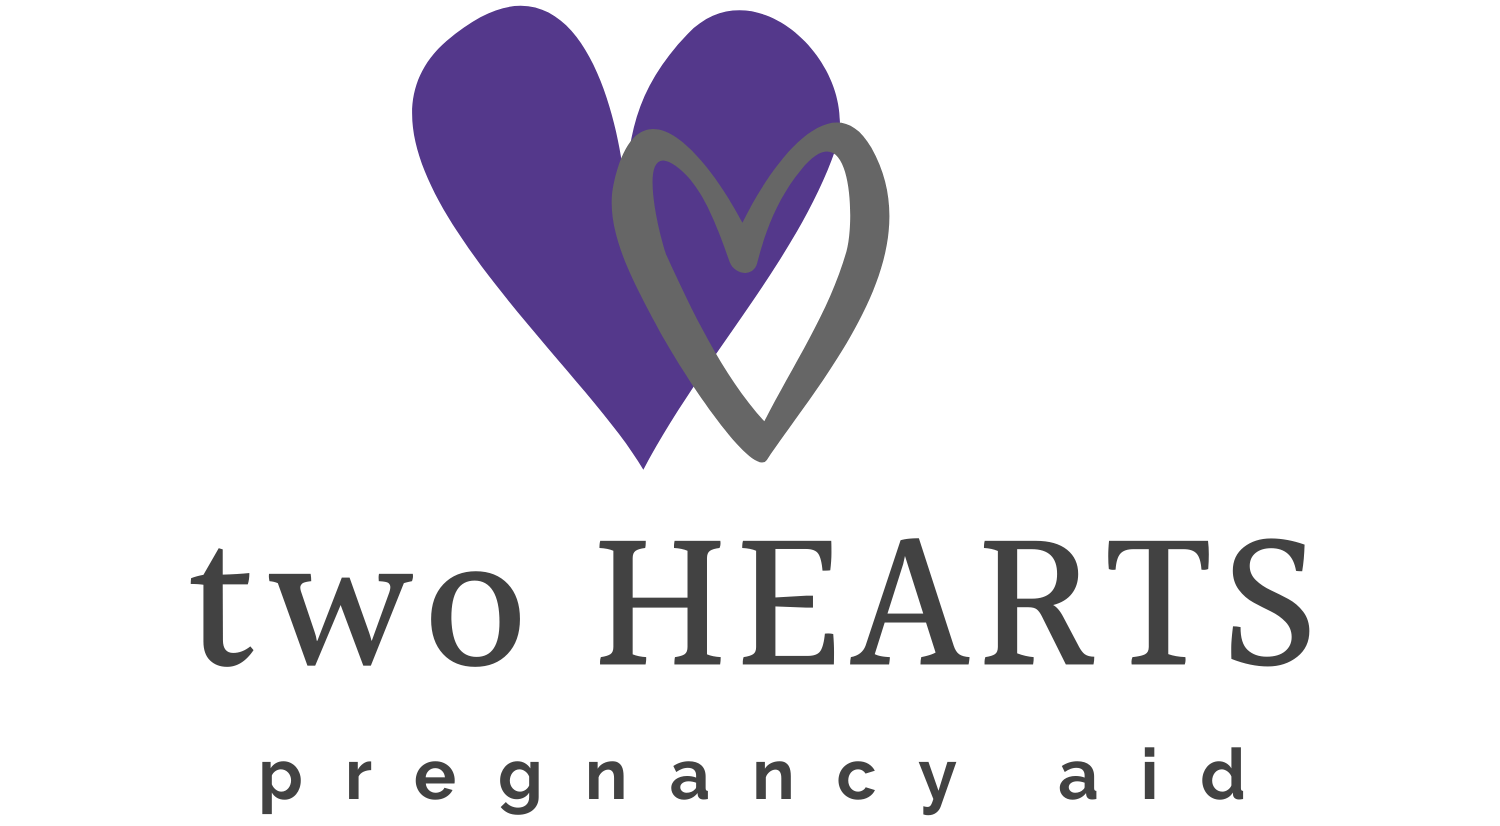 Two Hearts Pregnancy Aid